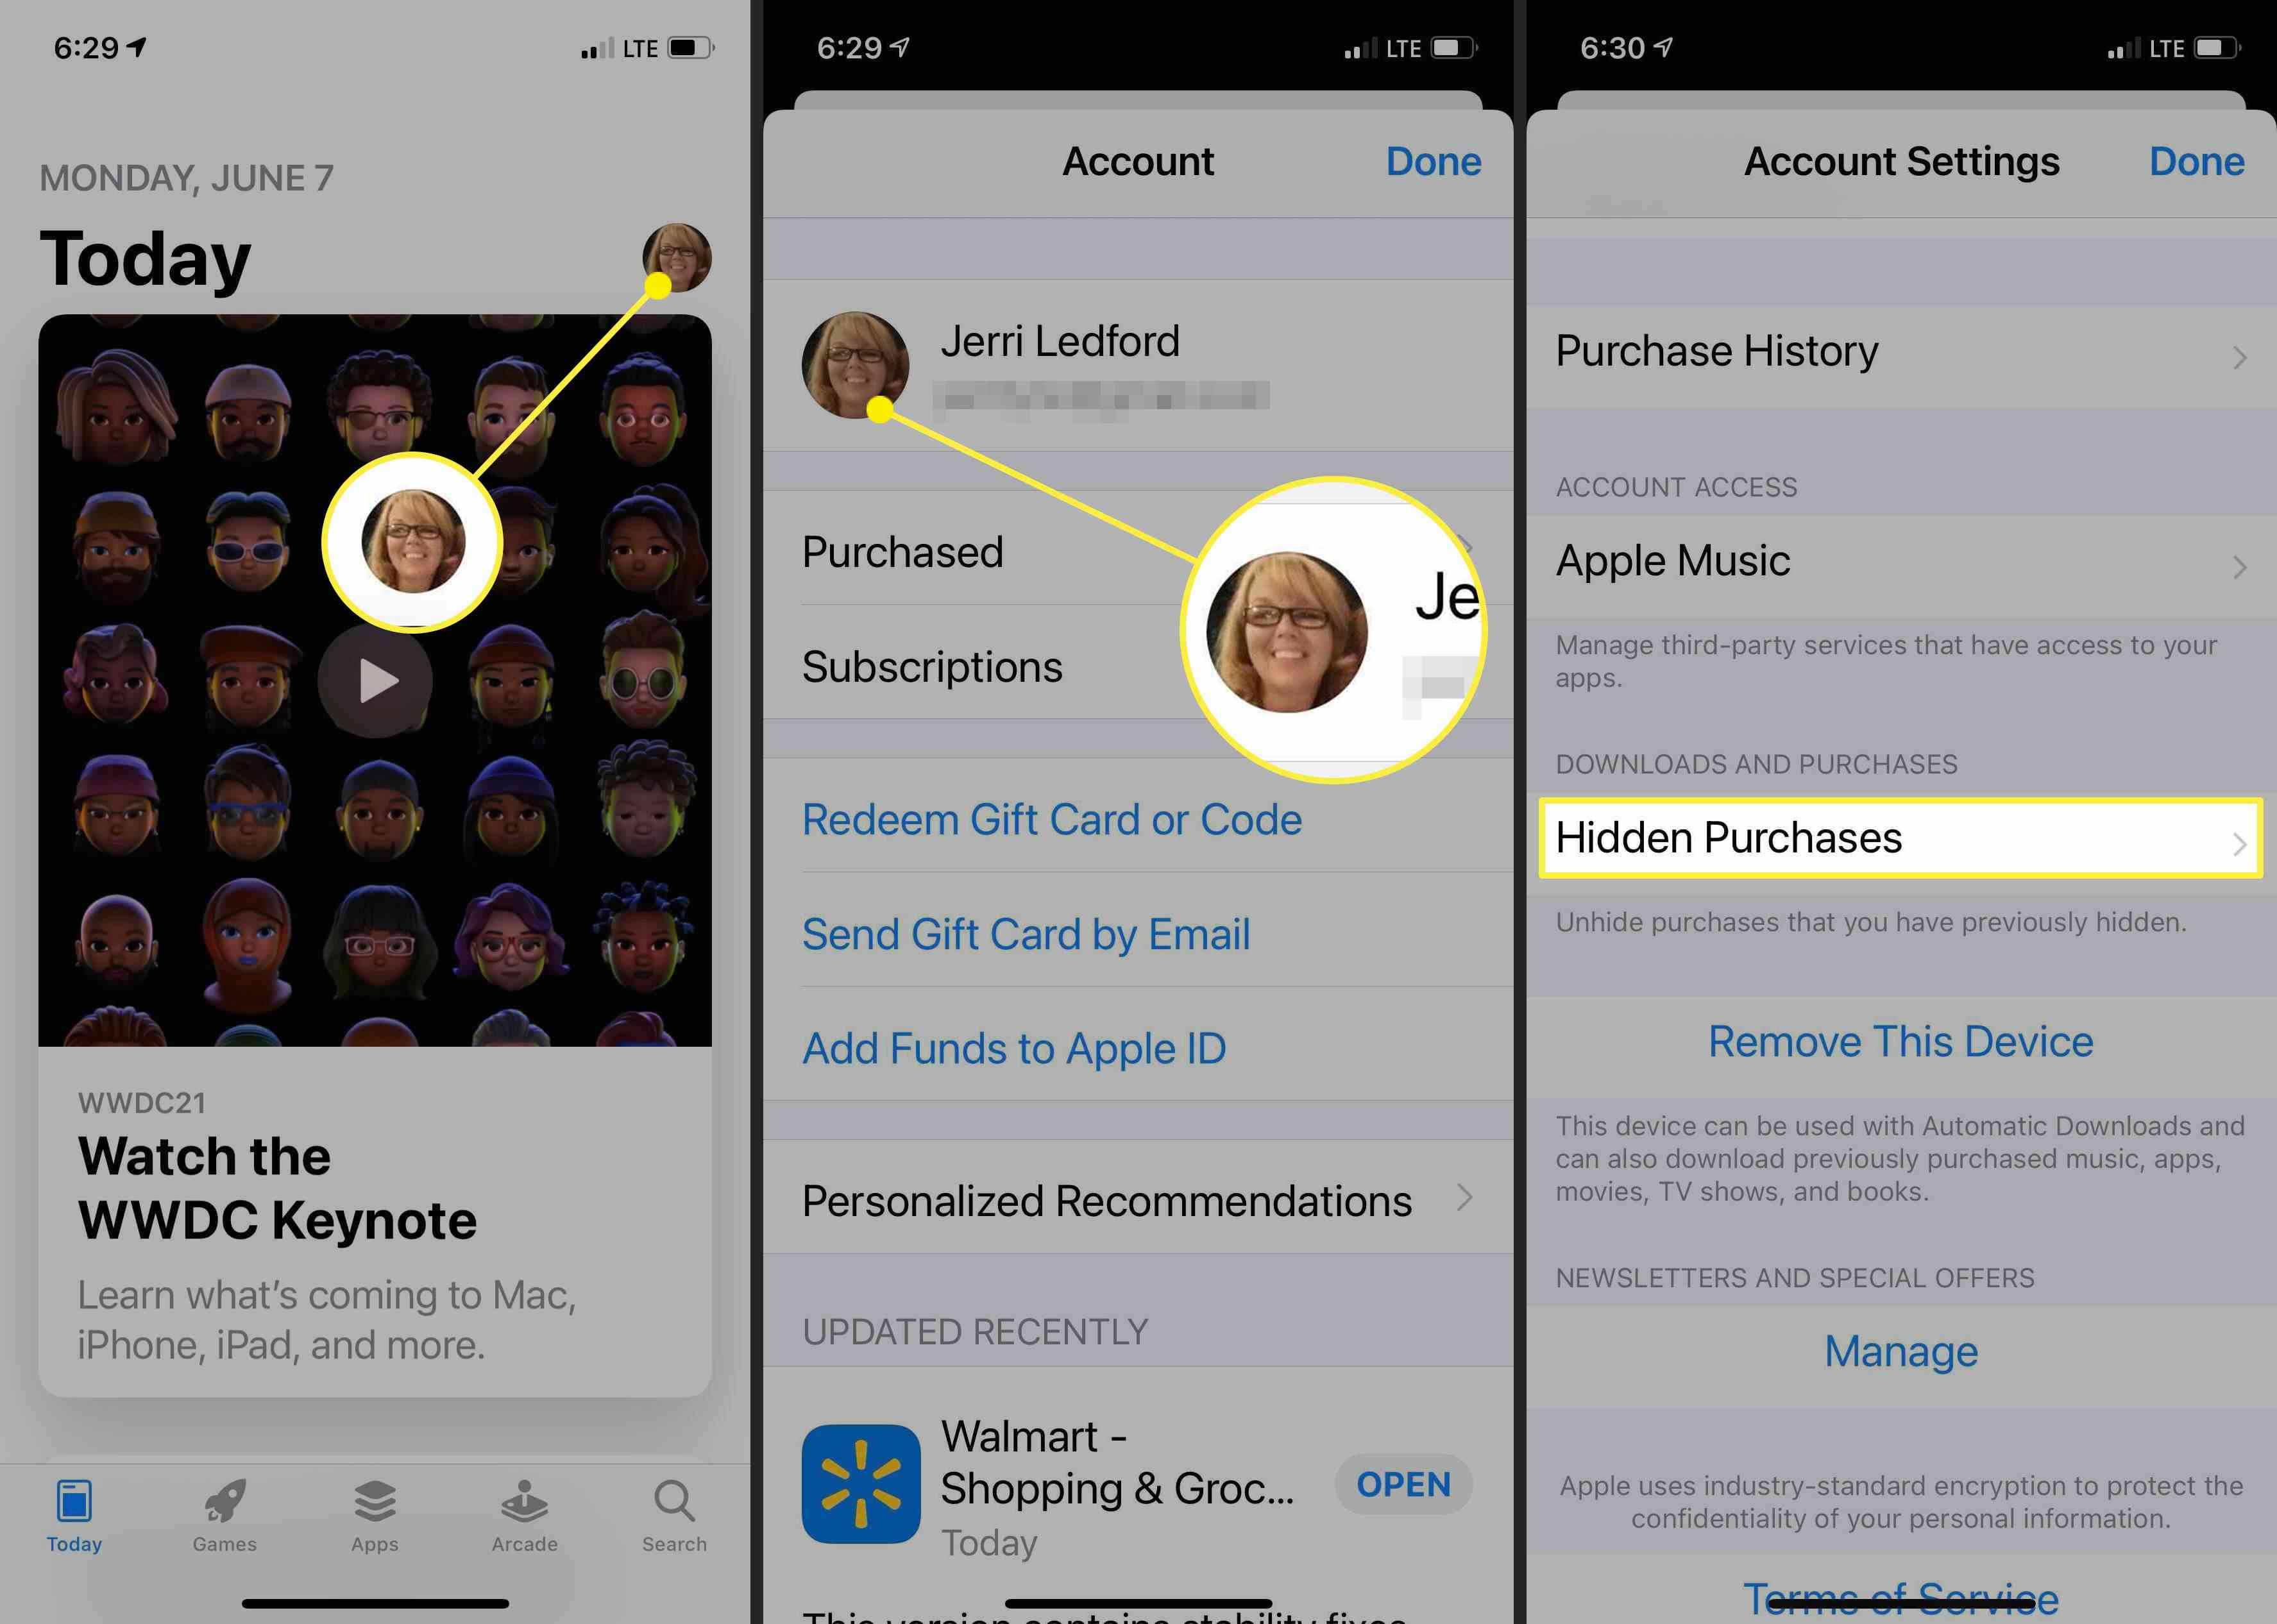 Screenshots showing how to find hidden purchases on iPhone.